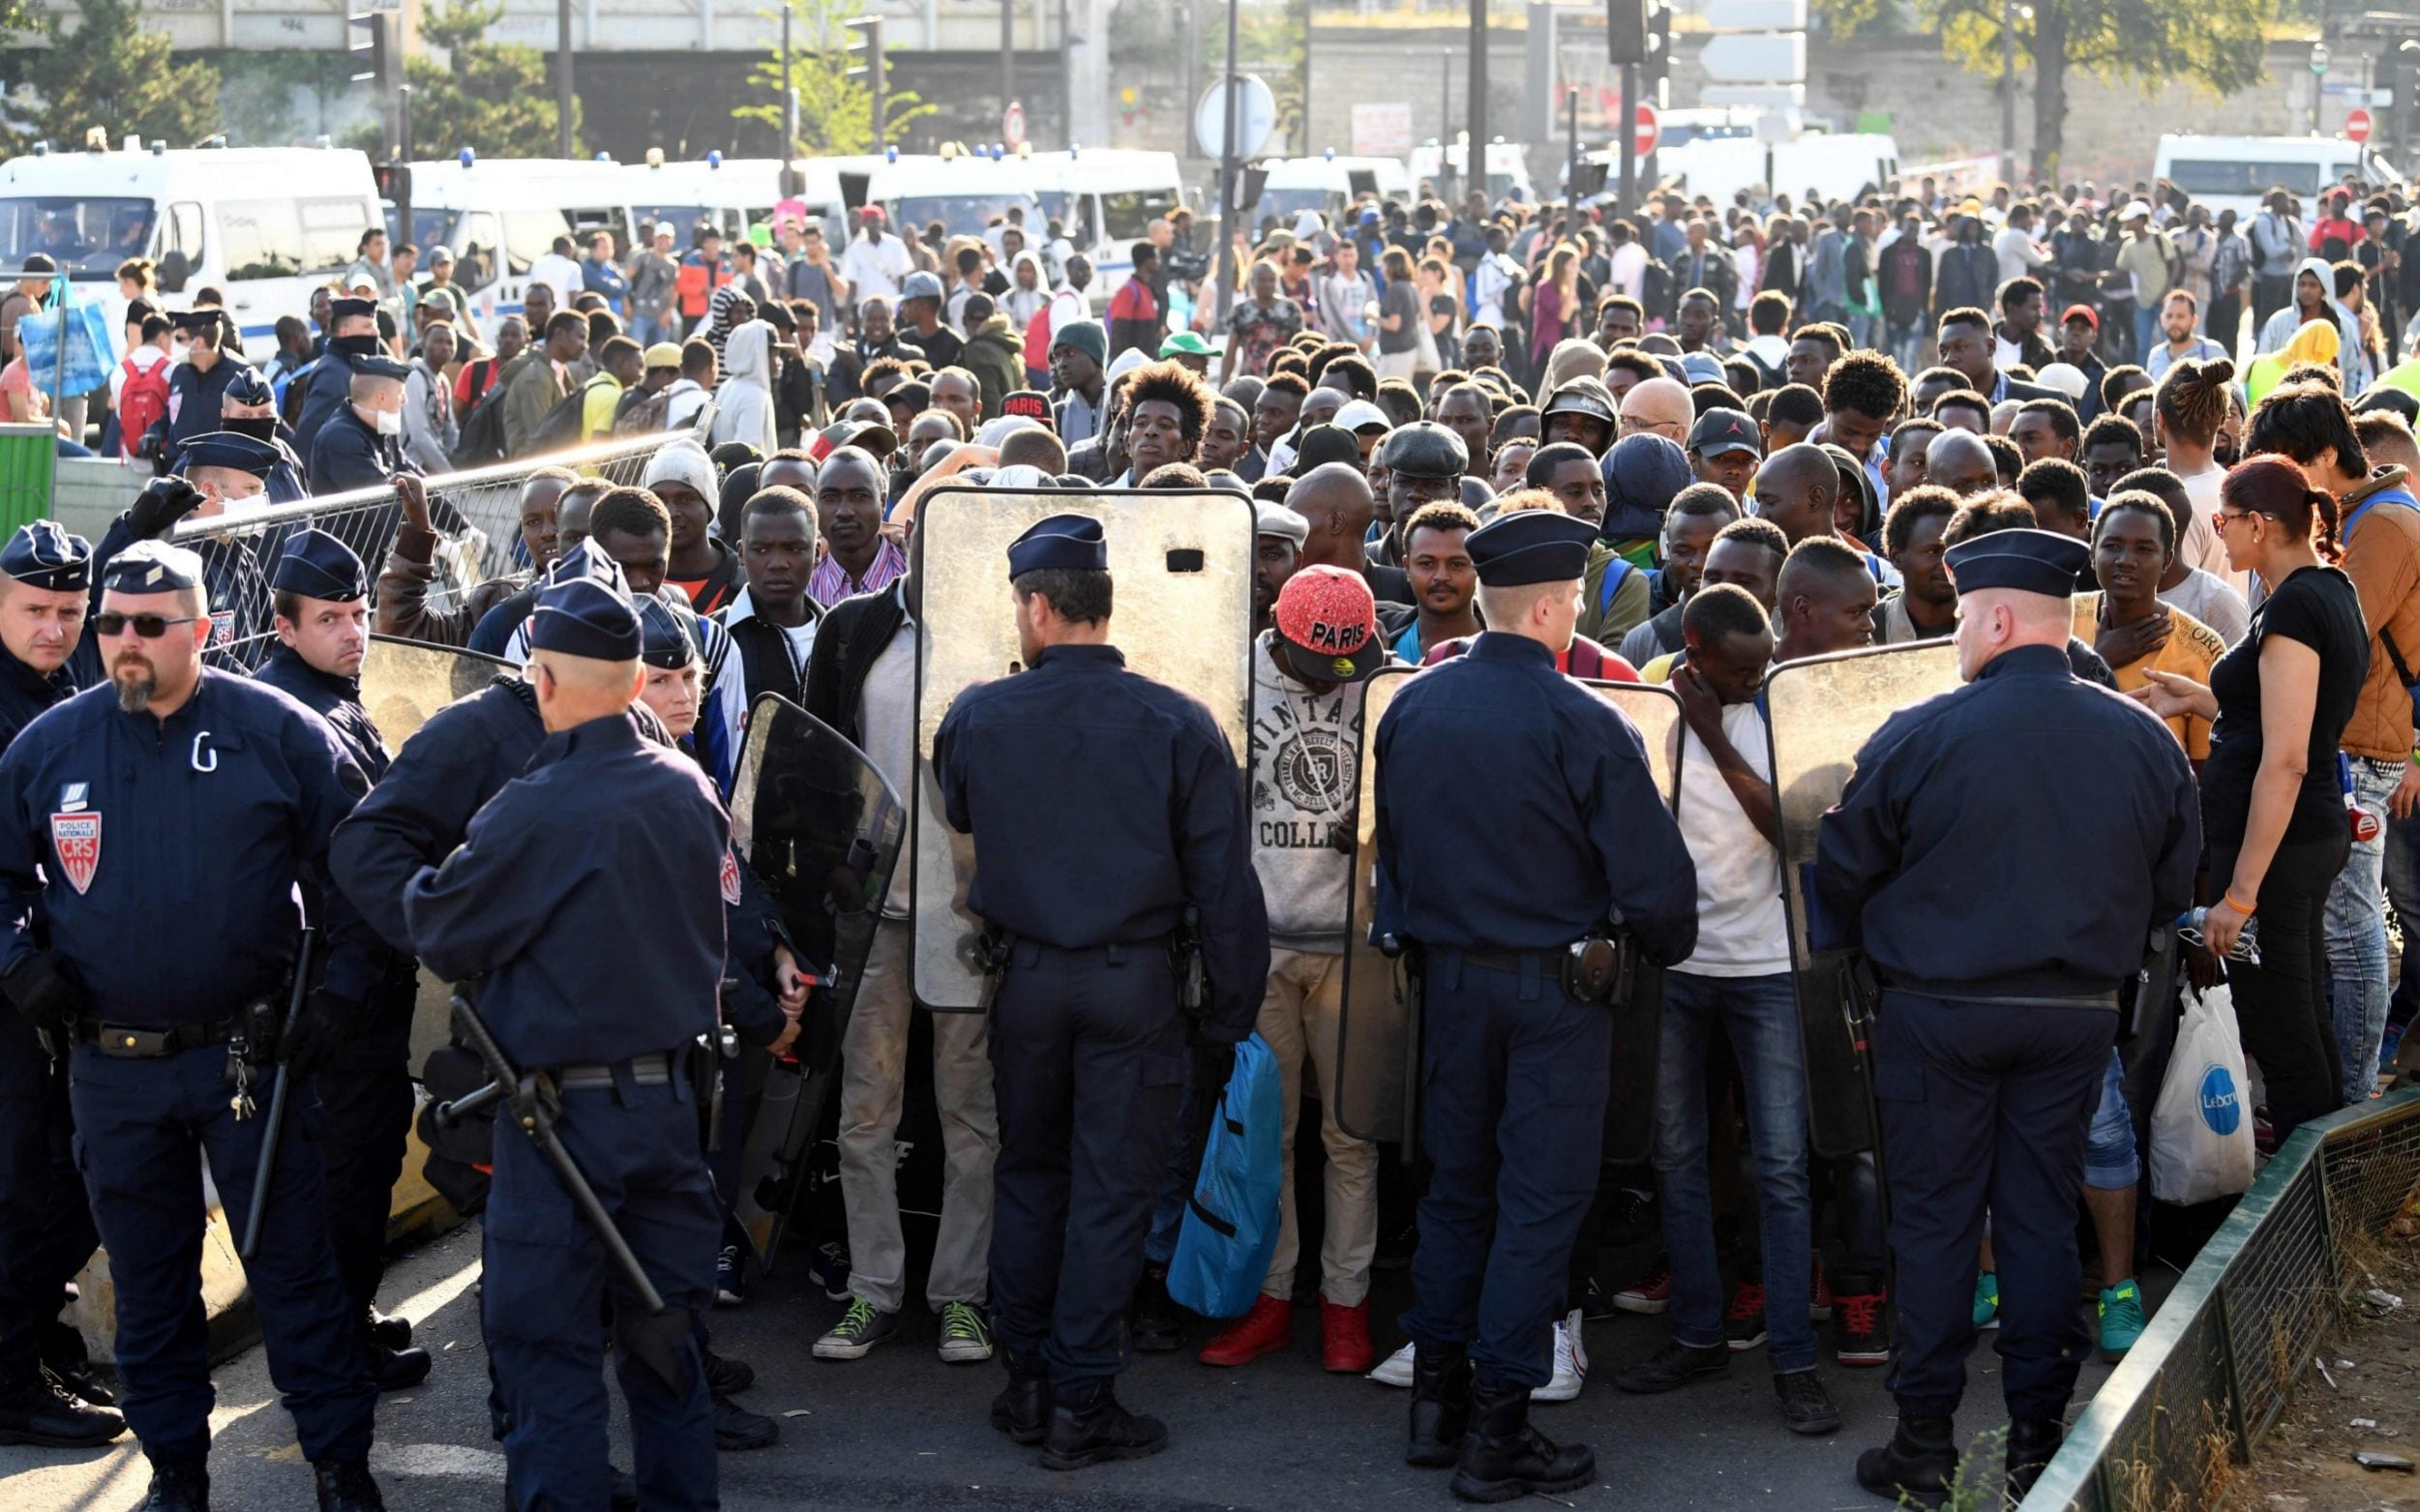 Parisians threaten hunger strike over migrant street camps Riot police stand guard during the evacuation of a makeshift camp in Porte  de la Chapelle